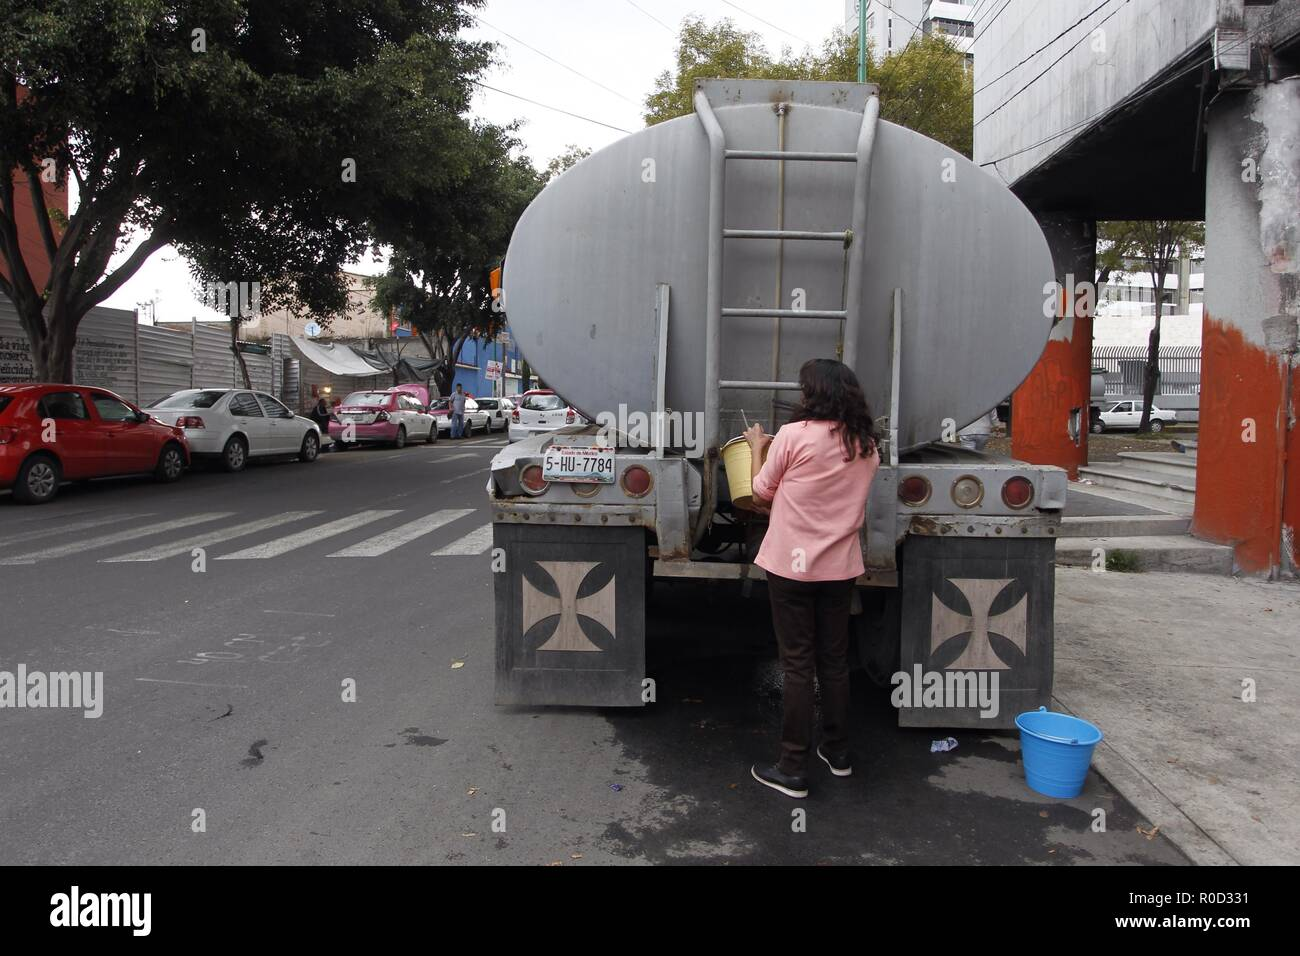 Water distributors supply inhabitants of Mexico City with water in